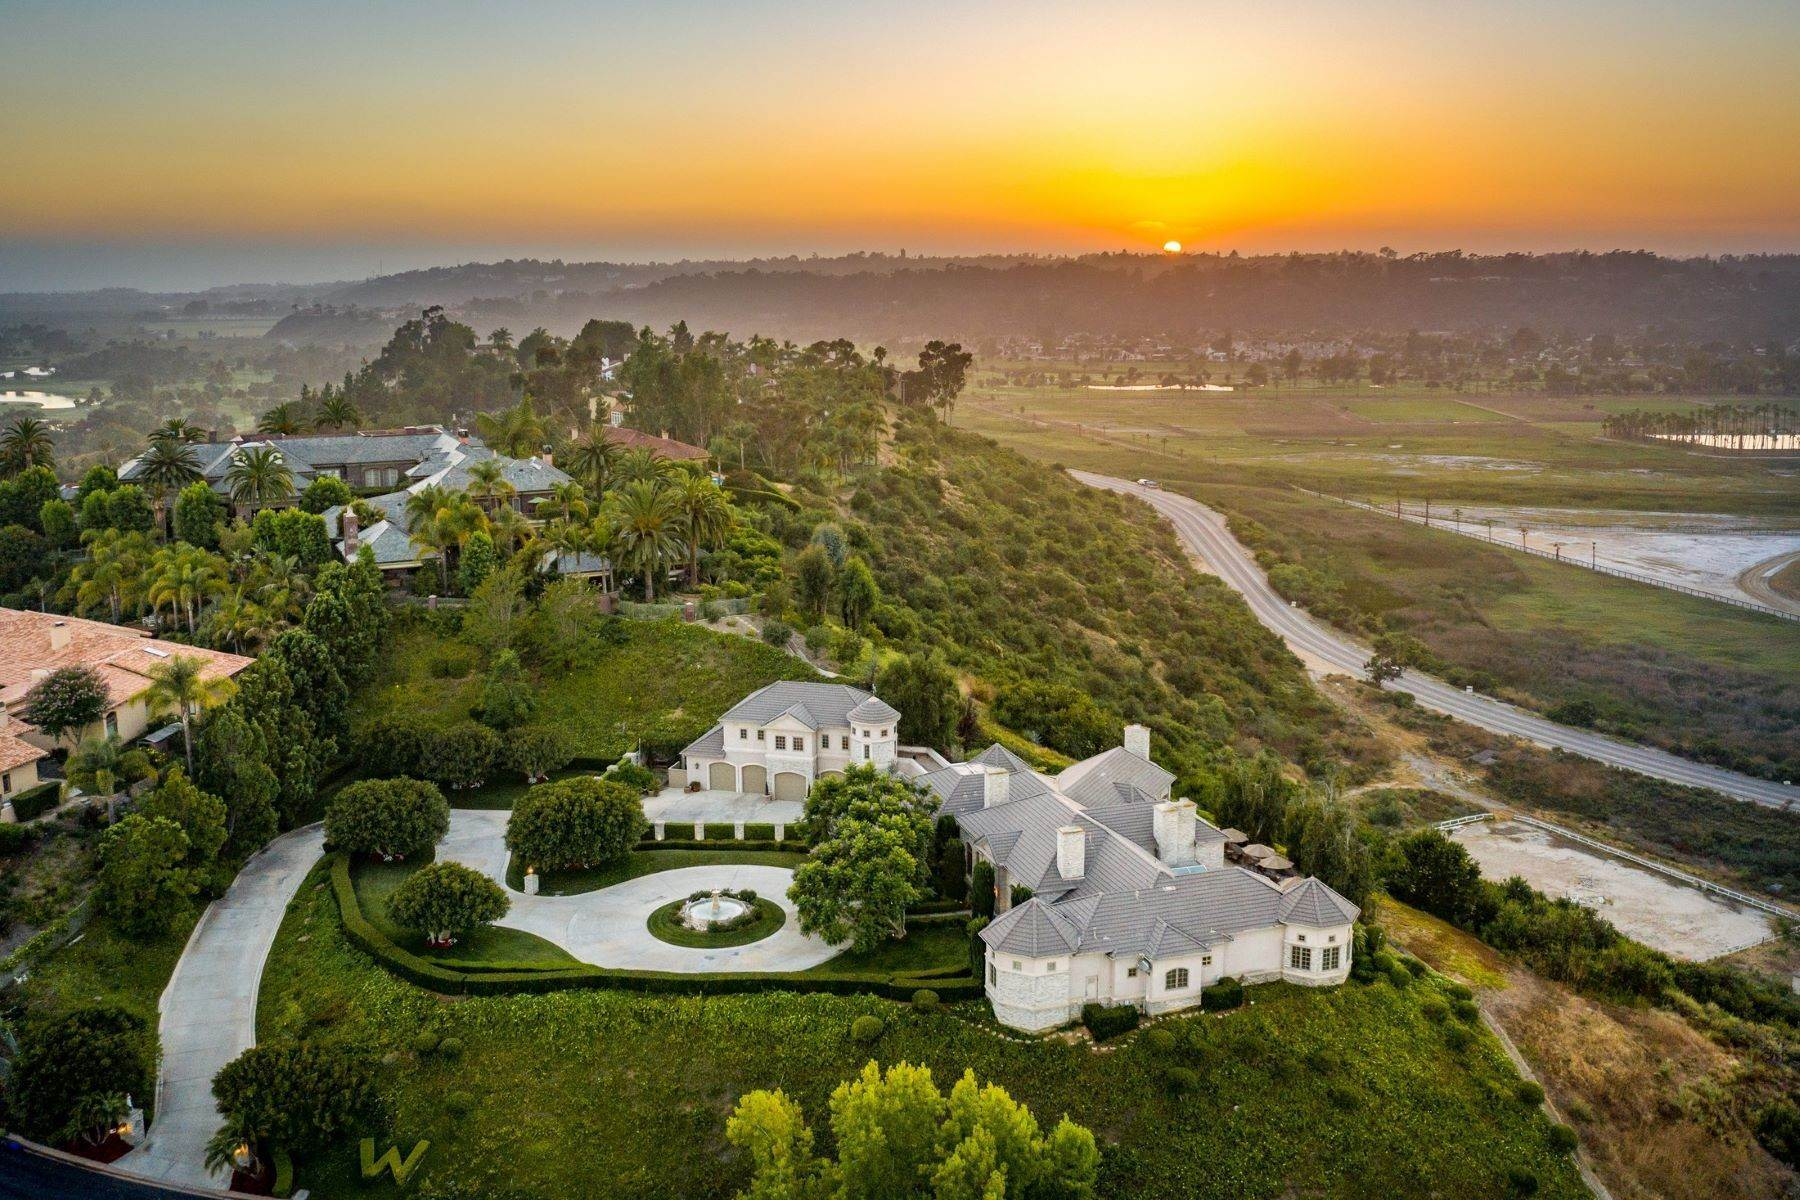 Single Family Homes for Sale at Live Majestic 5865 Winland Hills Drive Rancho Santa Fe, California 92067 United States